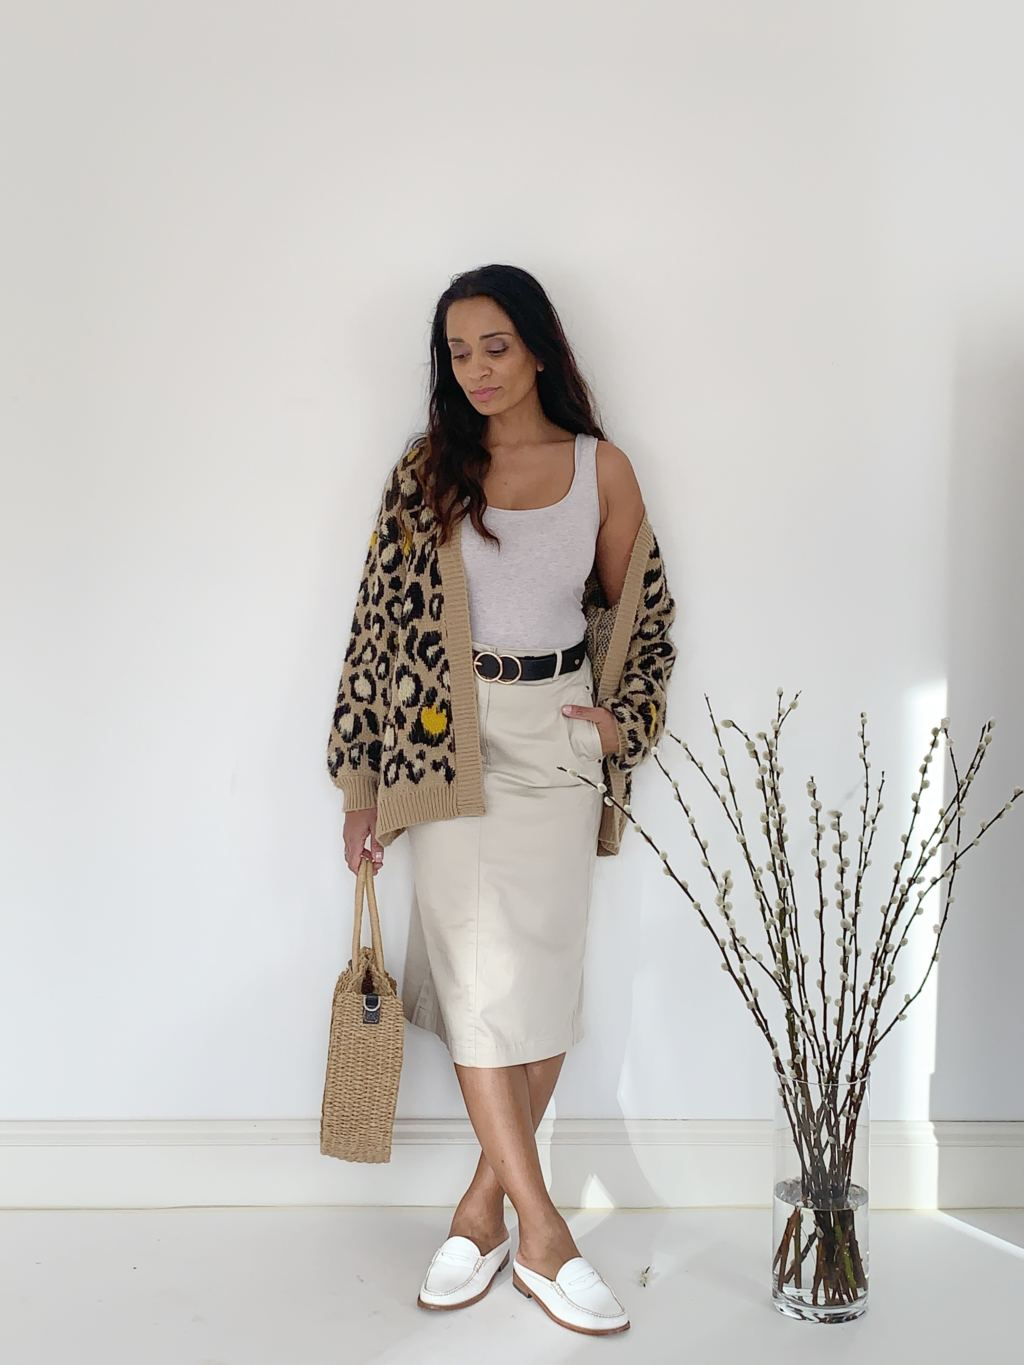 ALL THE BEIGE – THE NEUTRAL TREND 2019